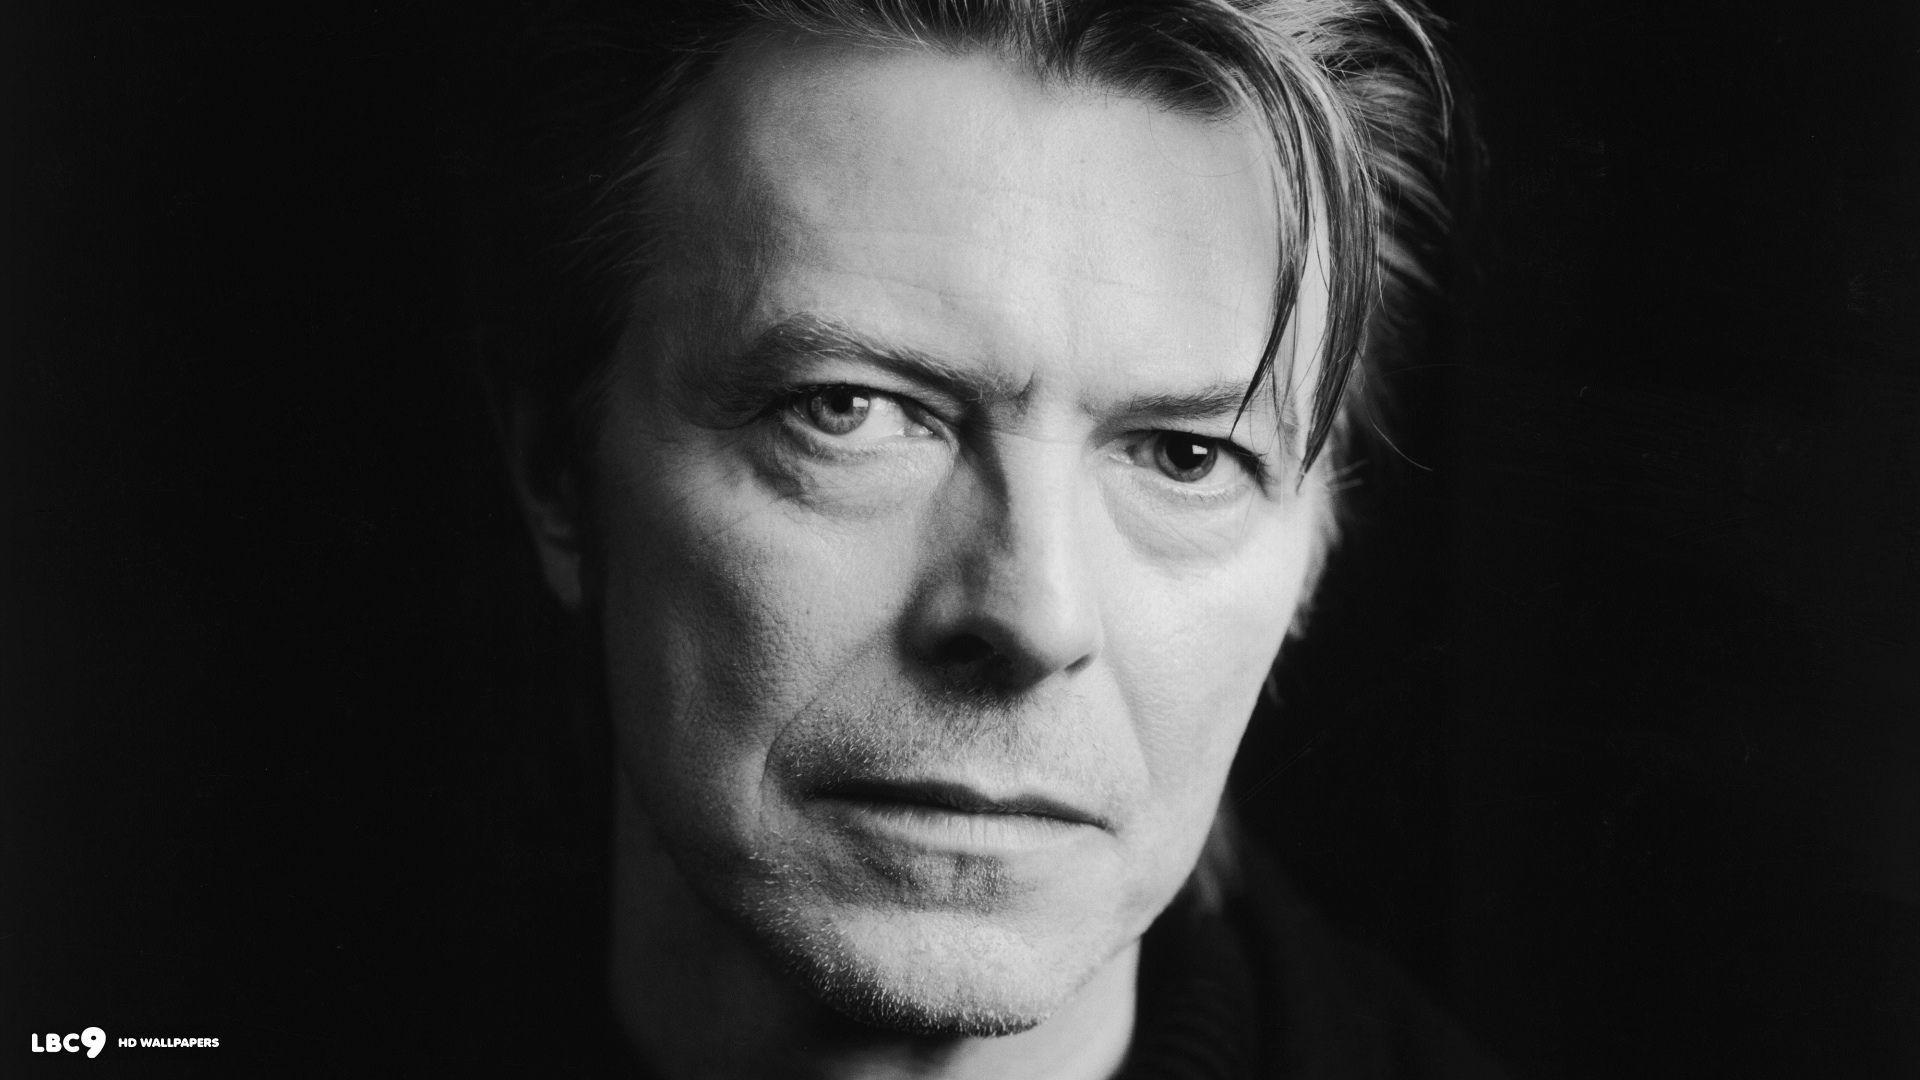 david bowie Wallpaper 1920x1080 | Hot HD Wallpaper